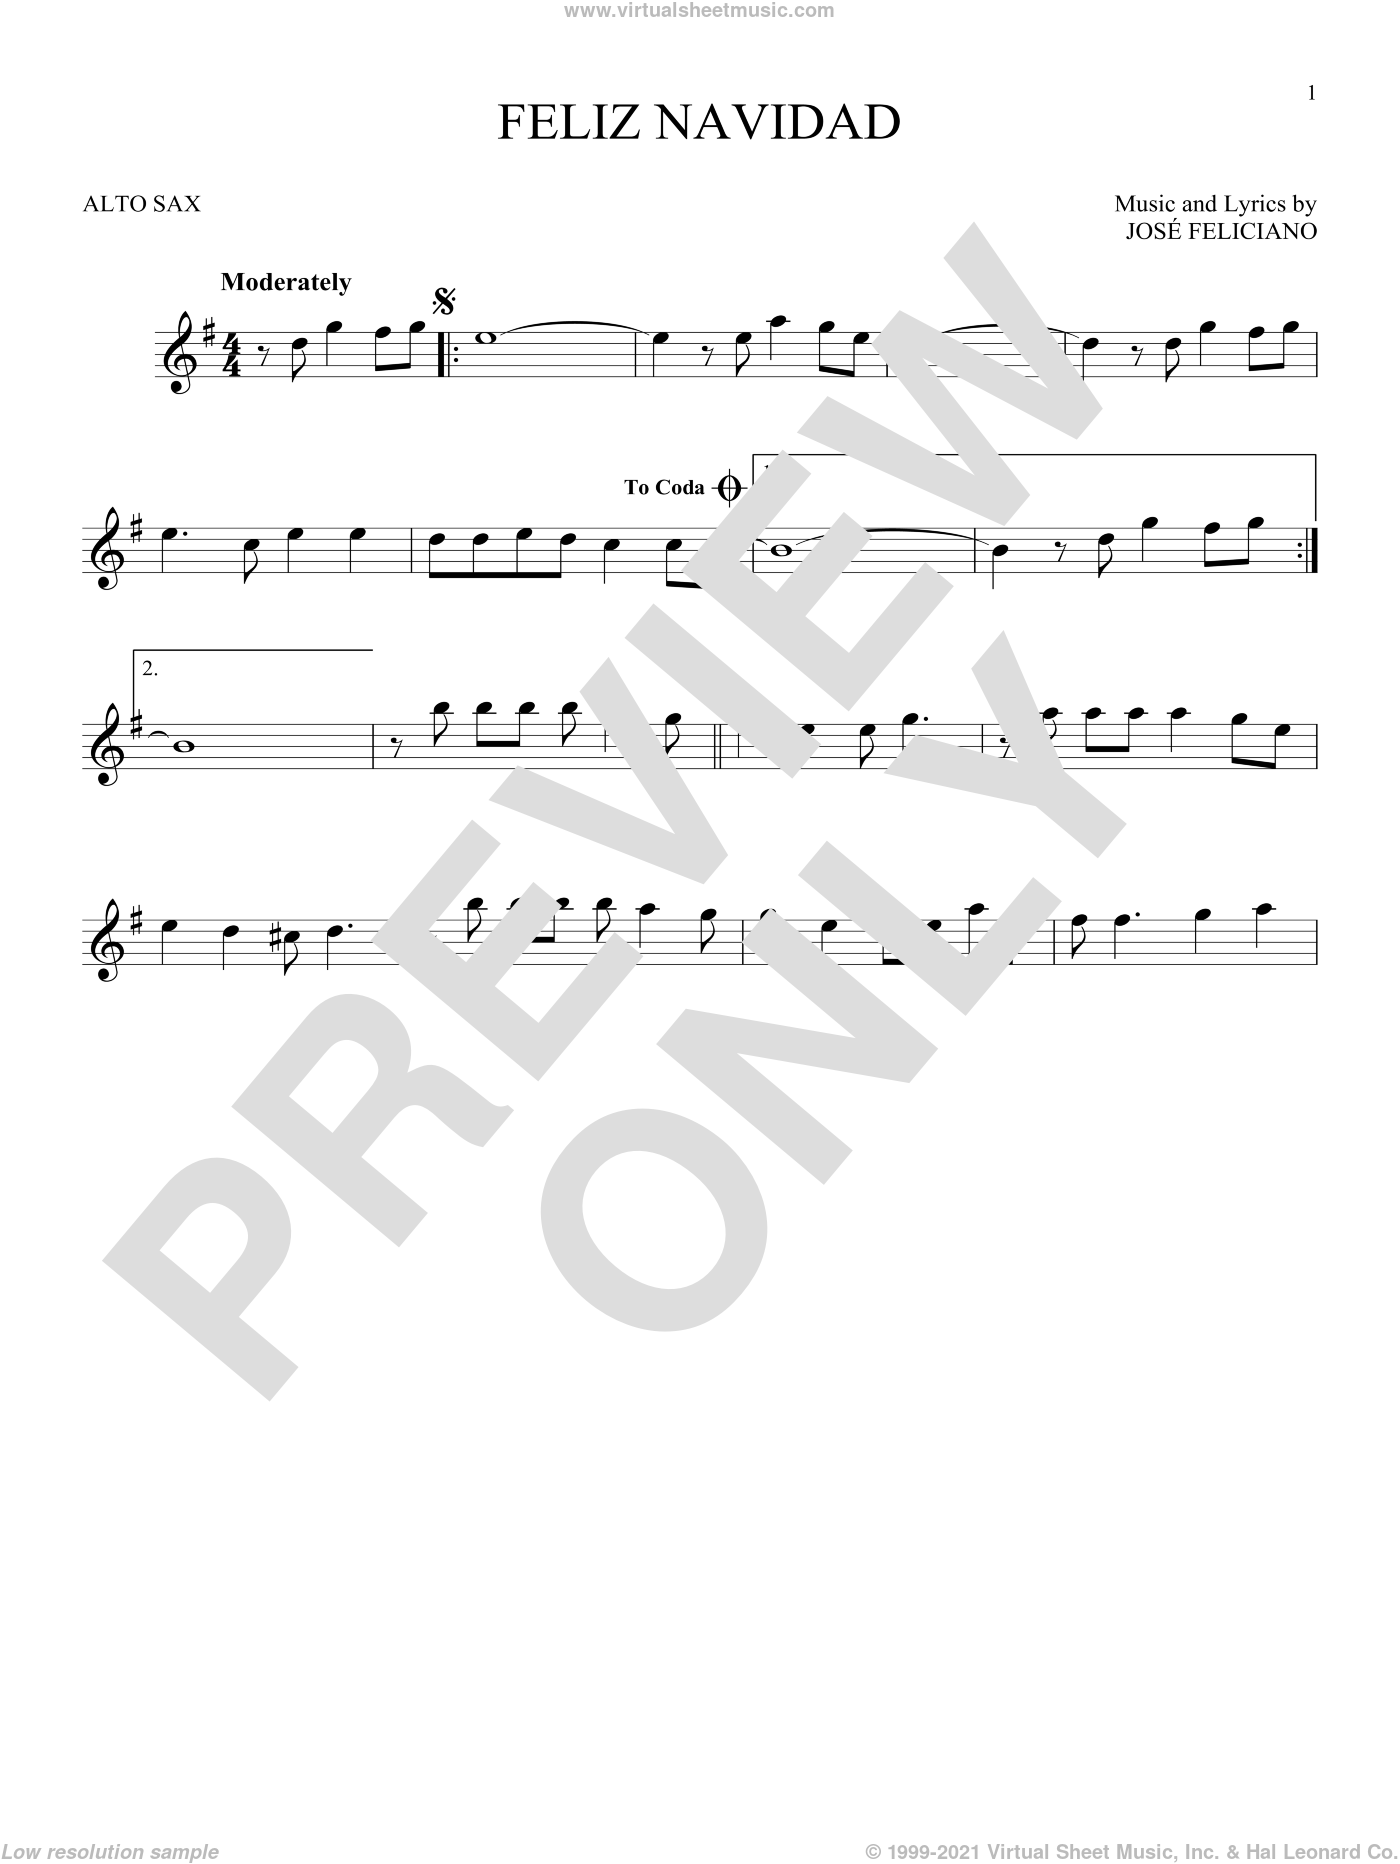 Feliz Navidad sheet music for alto saxophone solo by Jose Feliciano, intermediate